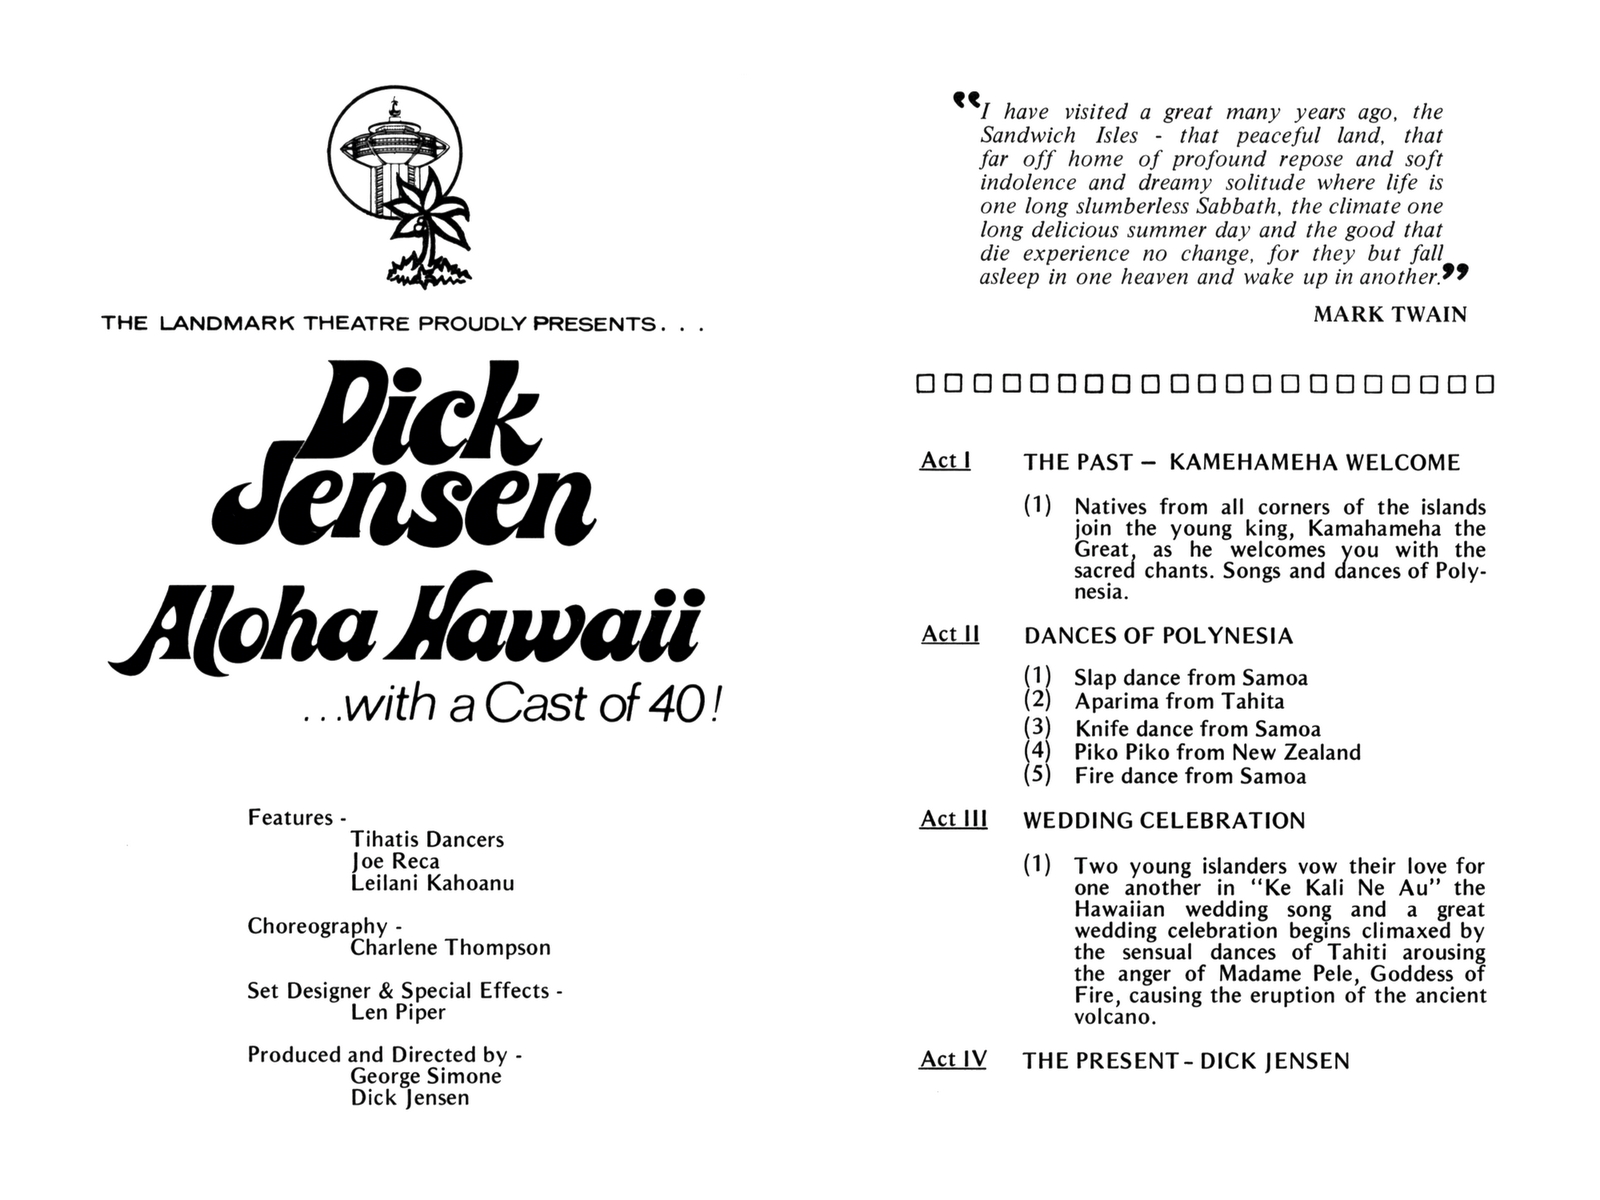 Stereo Candies: DICK JENSEN - ALOHA HAWAII AT THE LANDMARK THEATRE ...